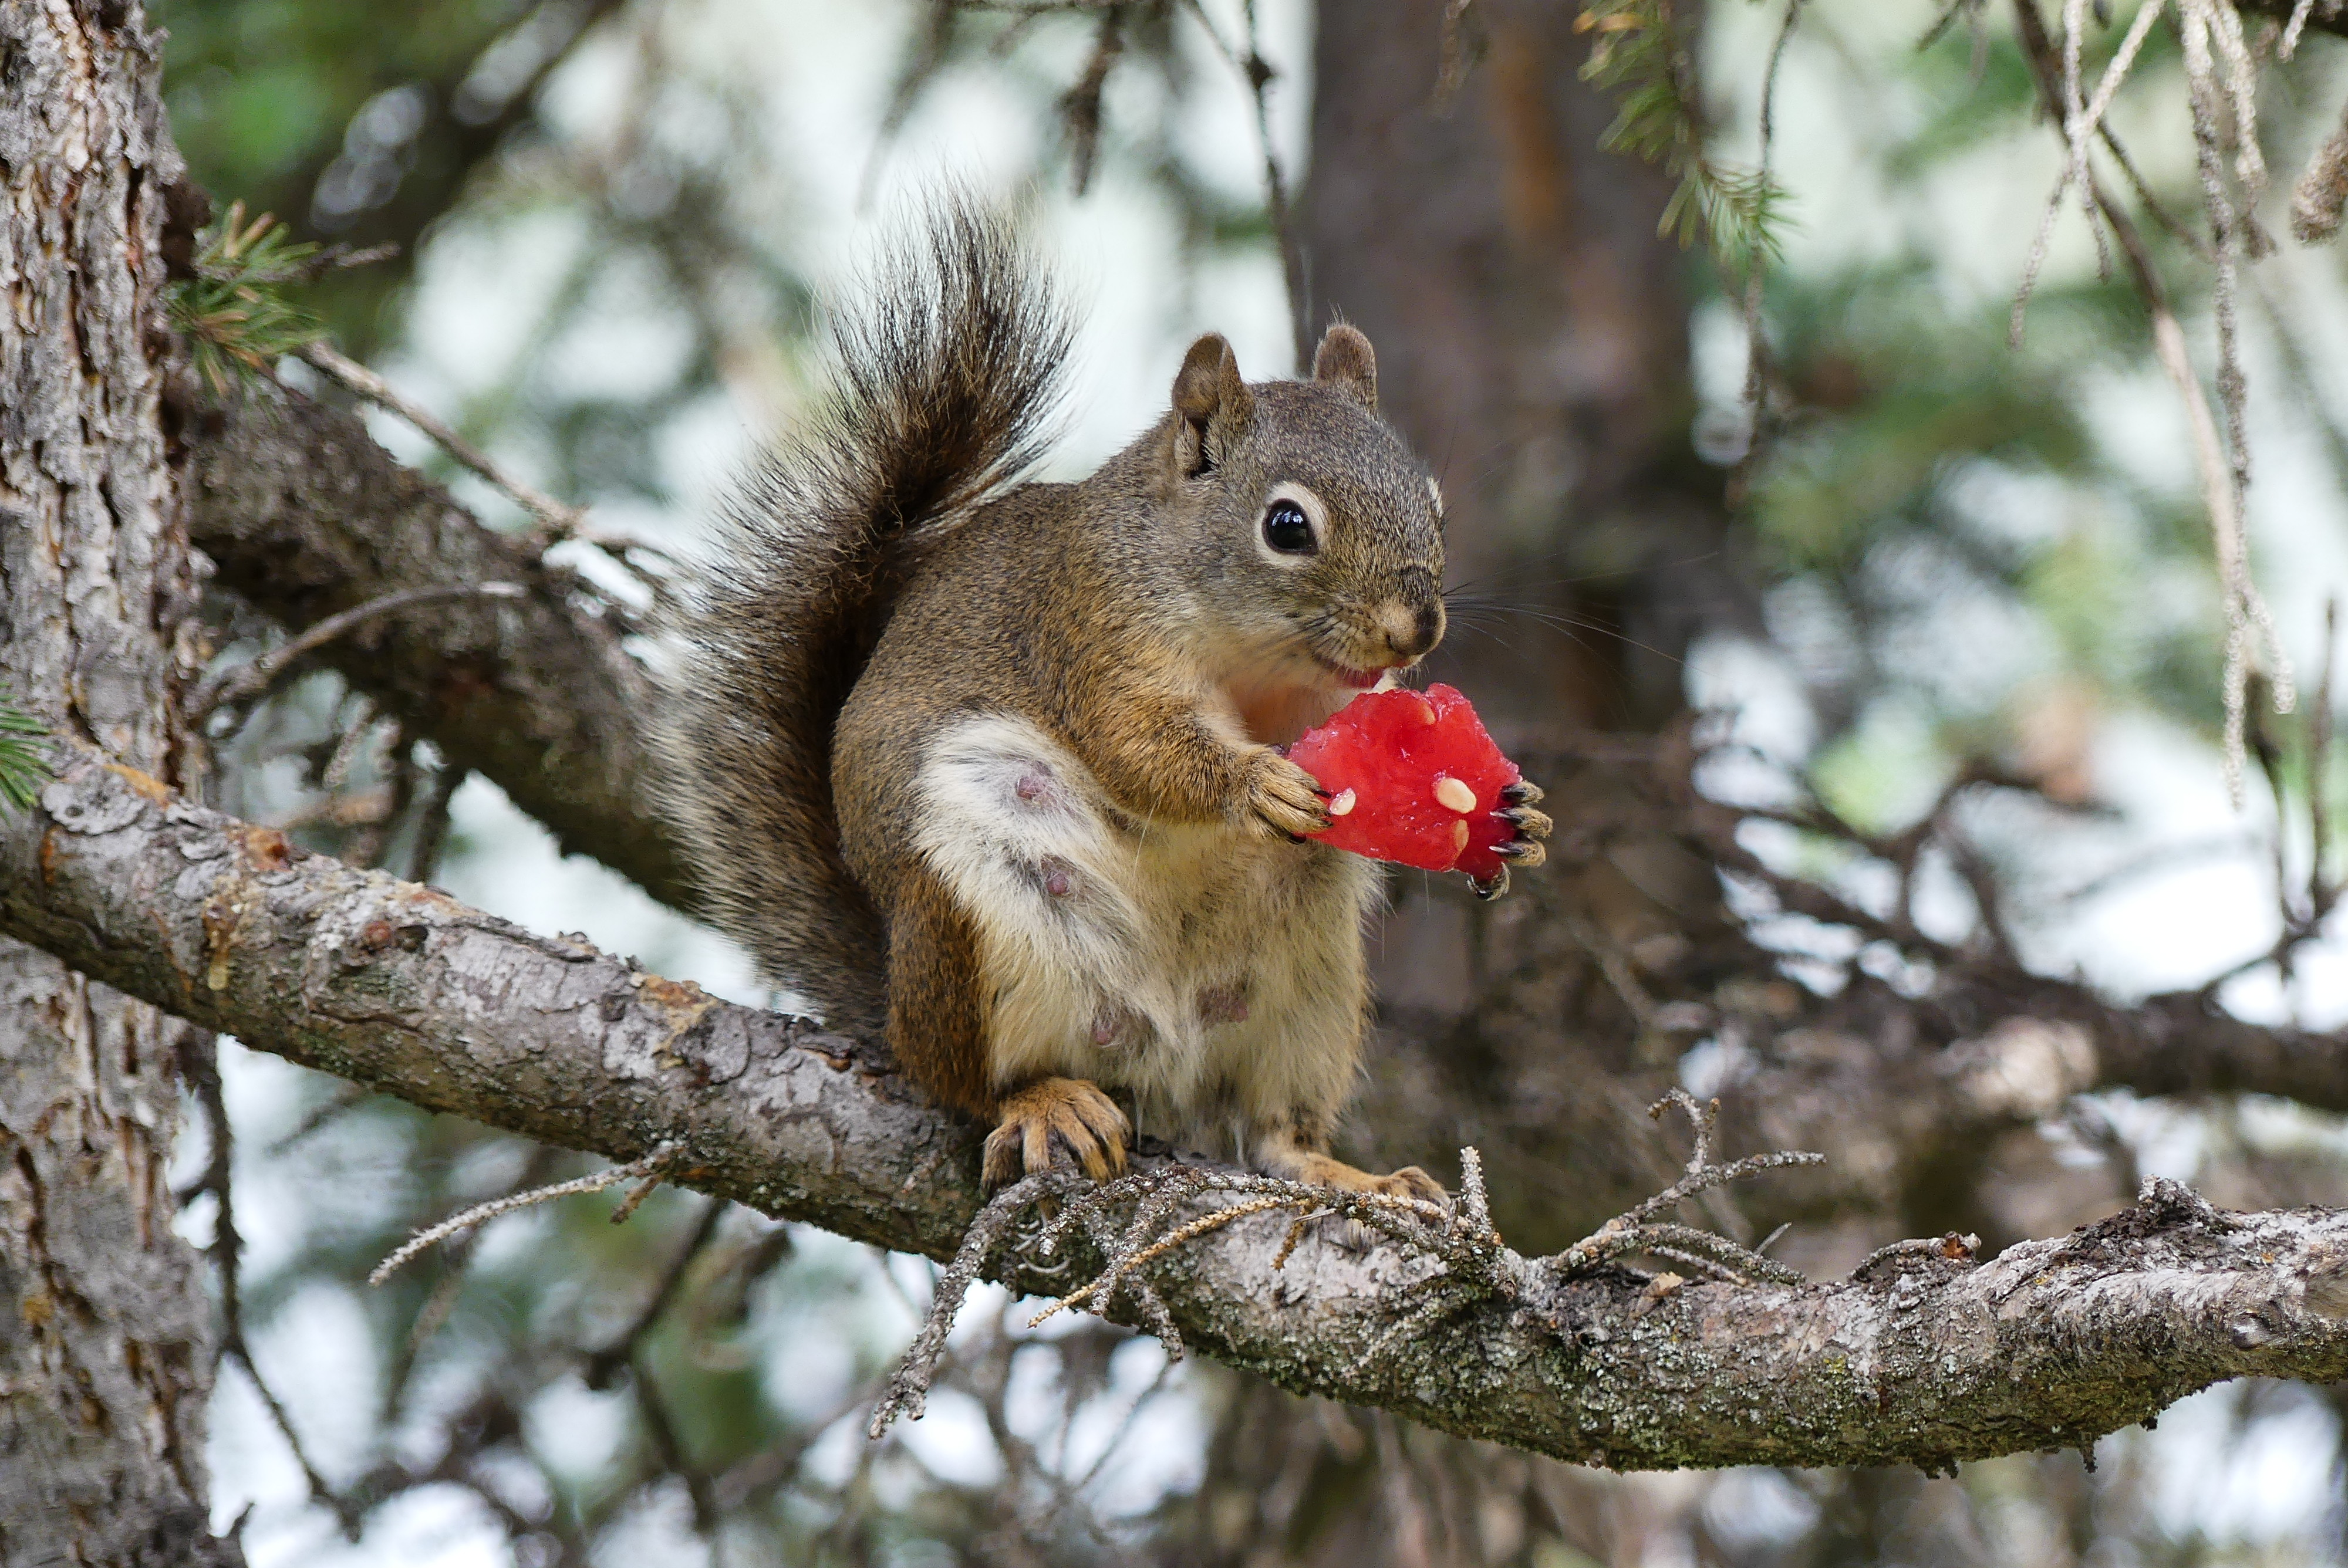 77736 download wallpaper Animals, Squirrel, Rodent, Fluffy, Branch, Watermelon screensavers and pictures for free